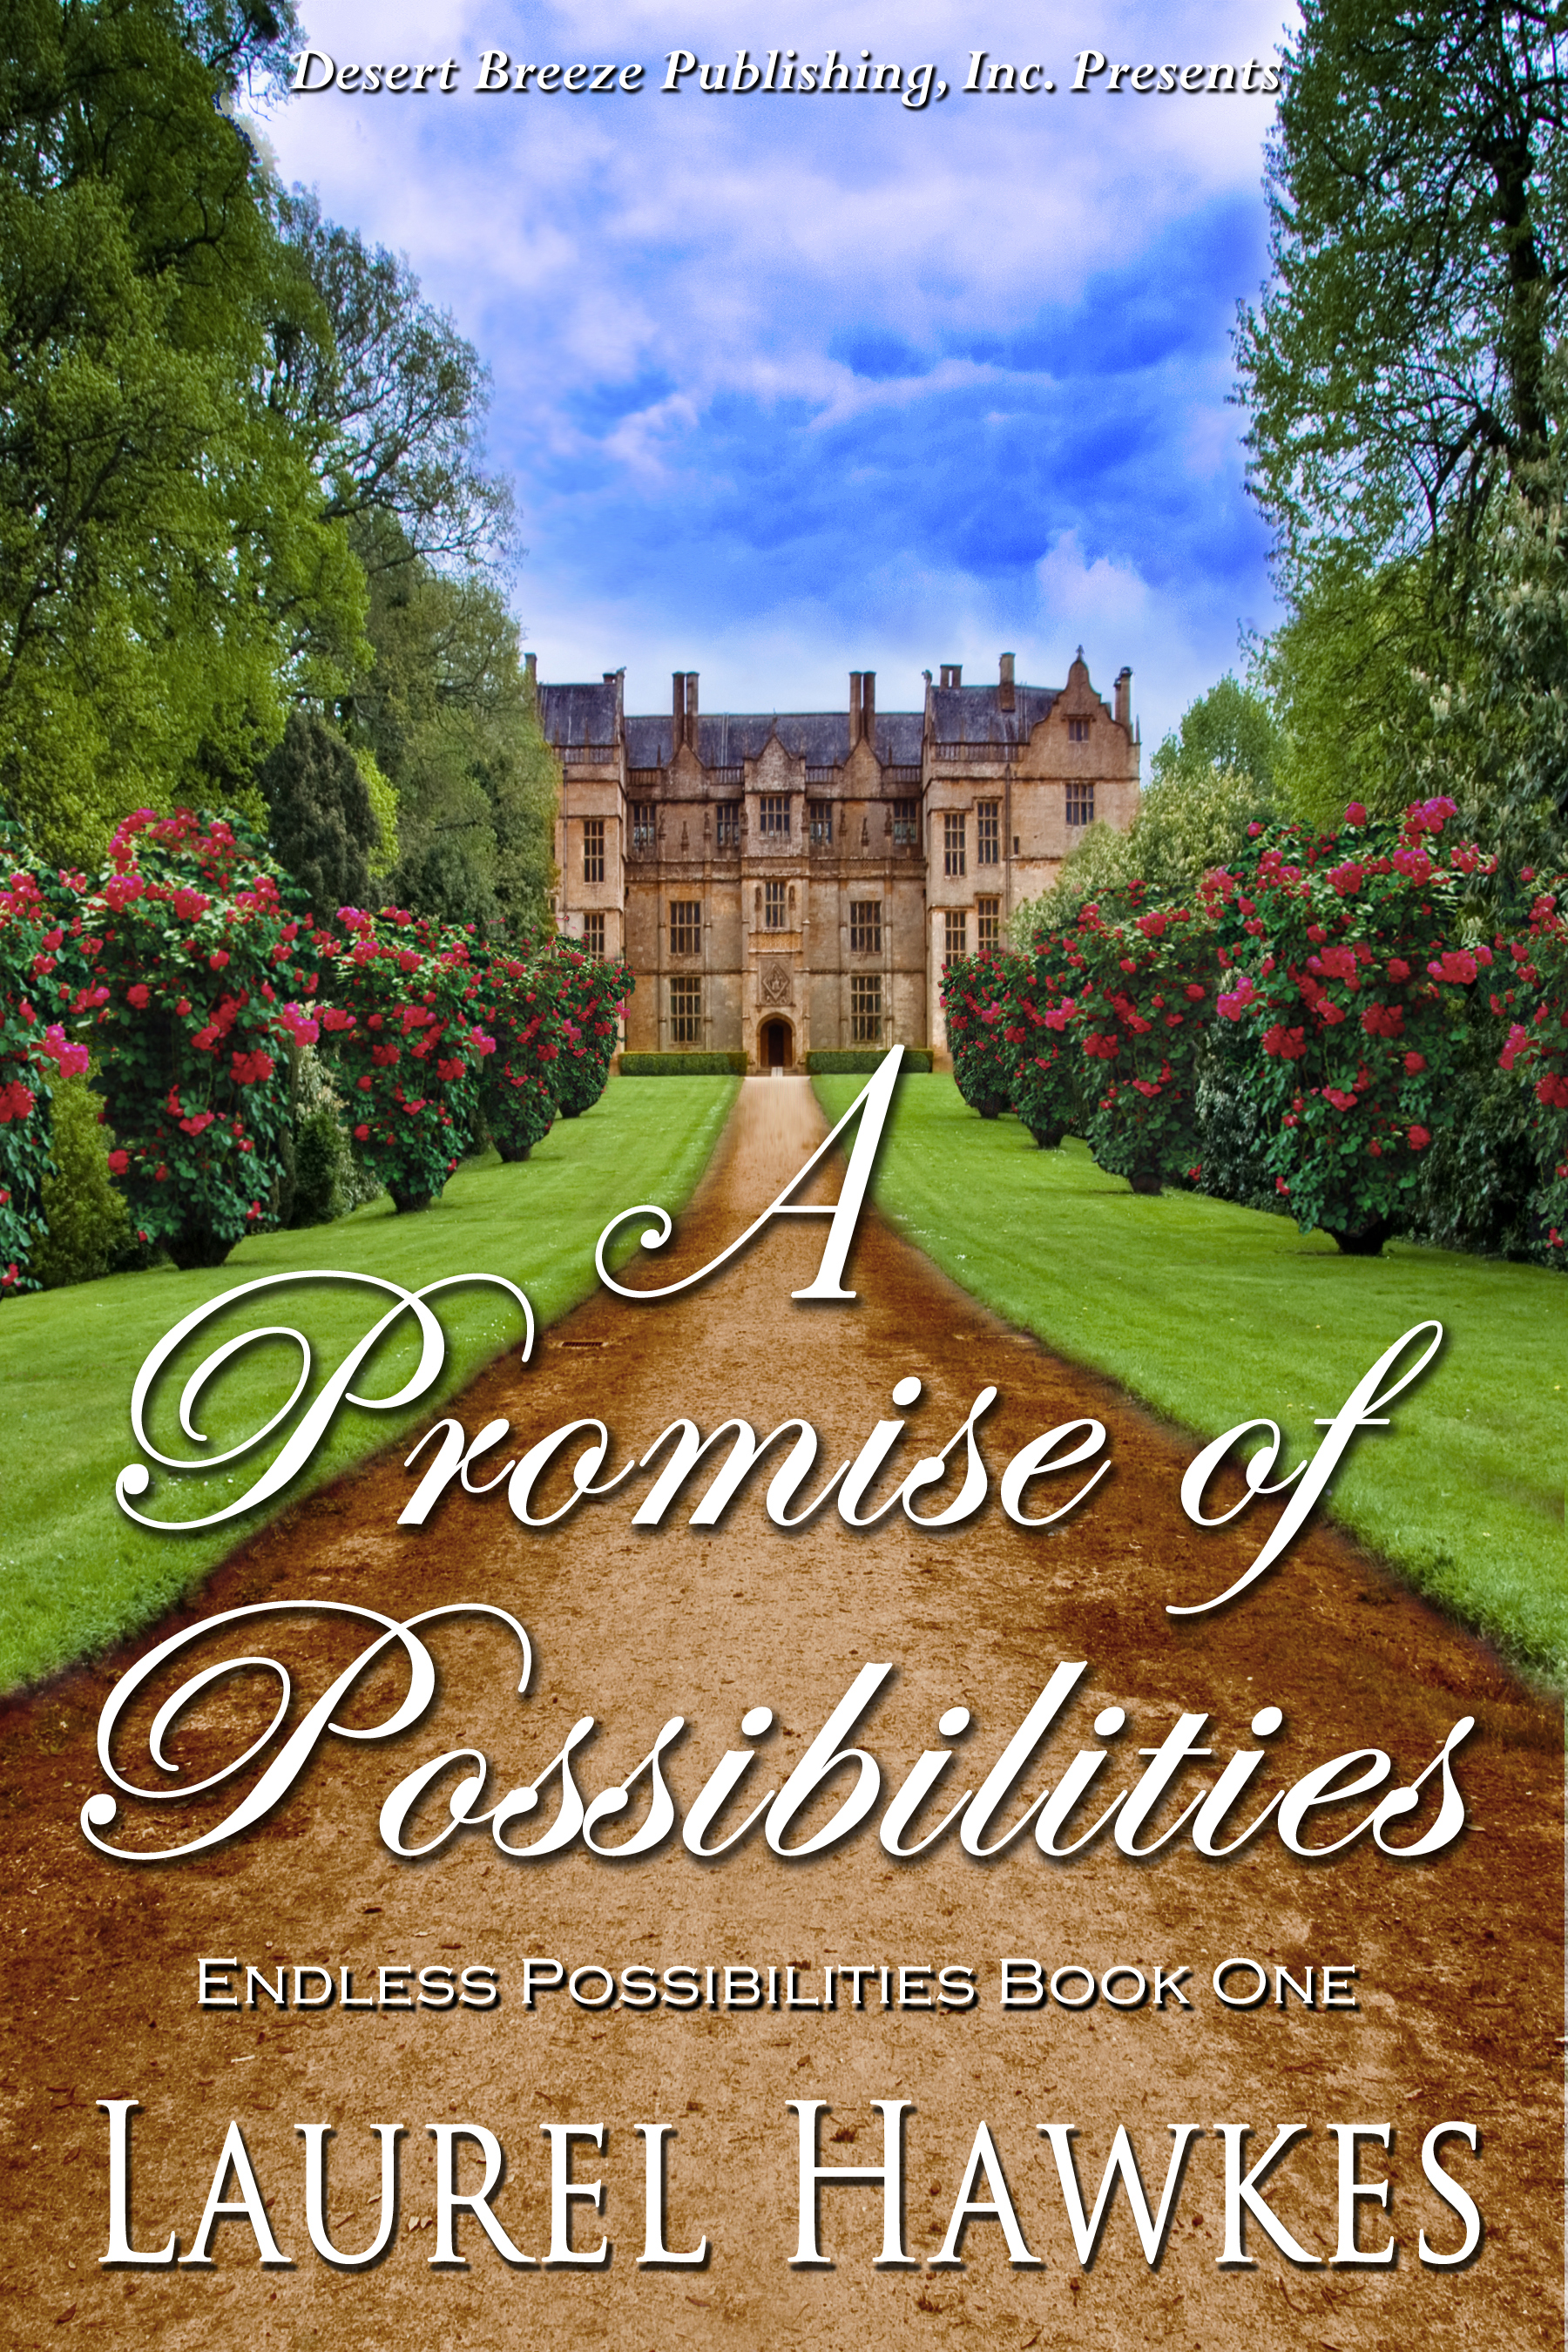 Endless Possibilities Book One: A Promise of Possibilities By: Laurel Hawkes